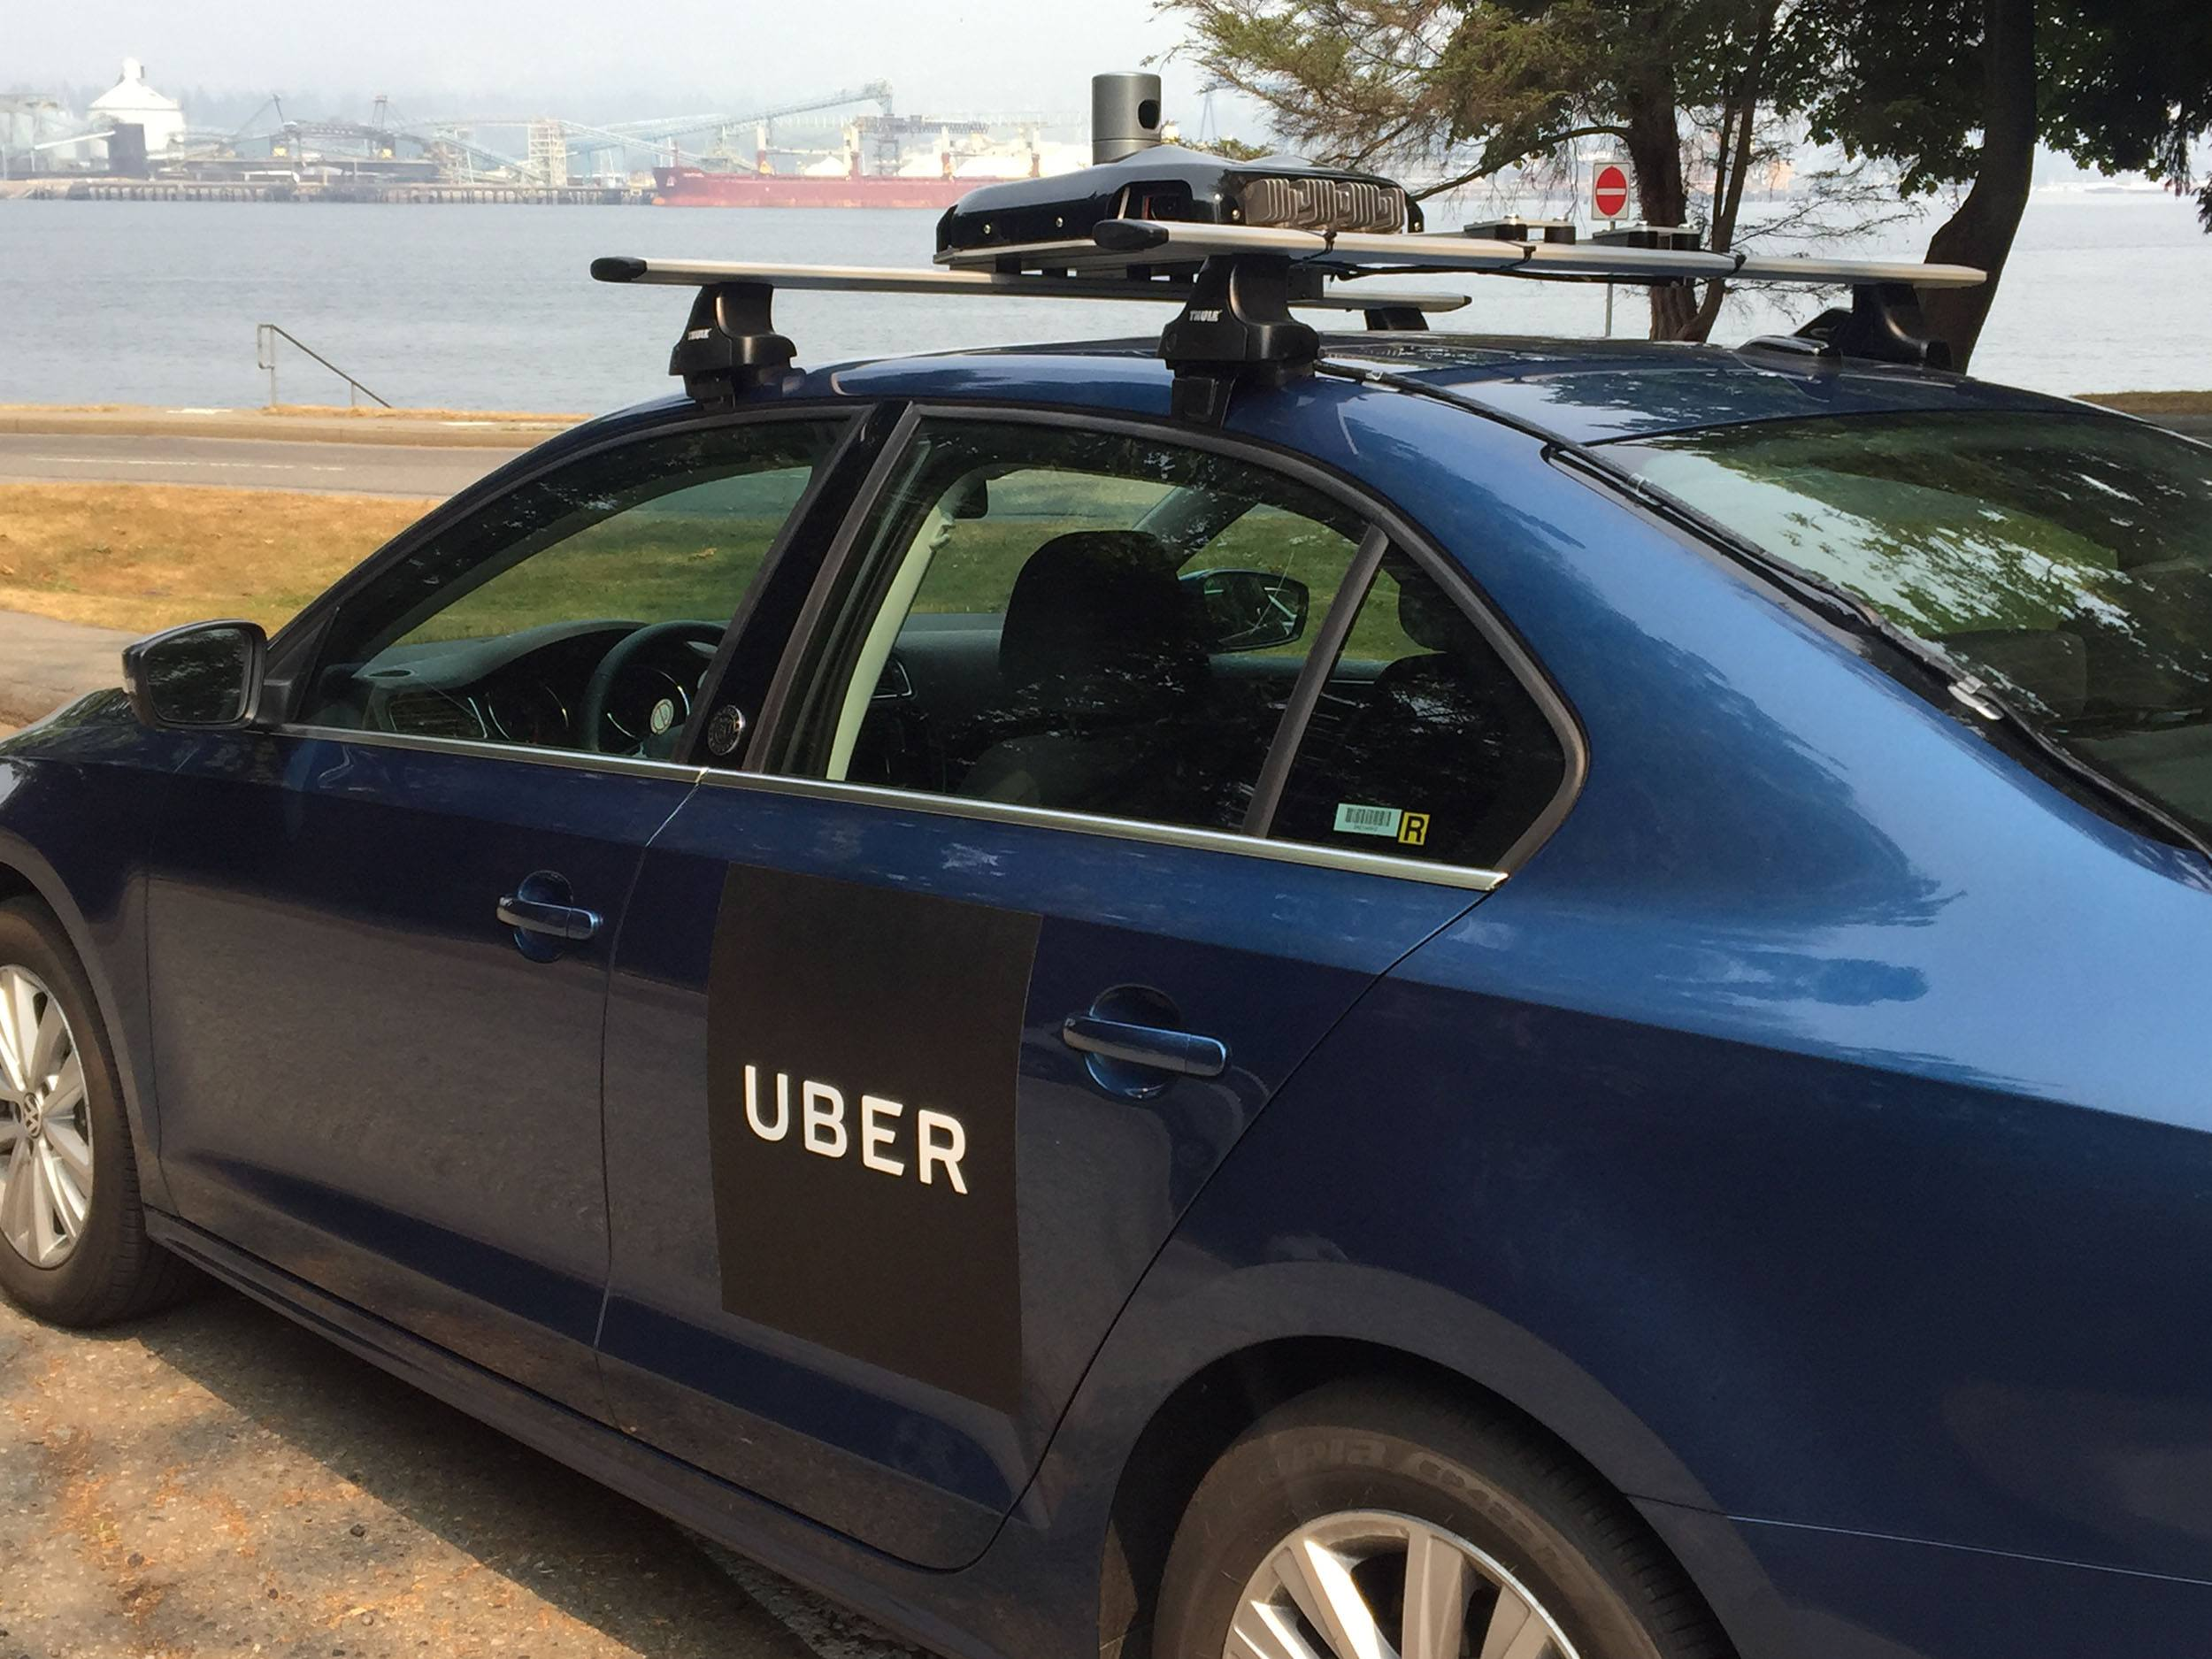 One of Uber's enhanced mapping cars in Stanley Park (Uber)